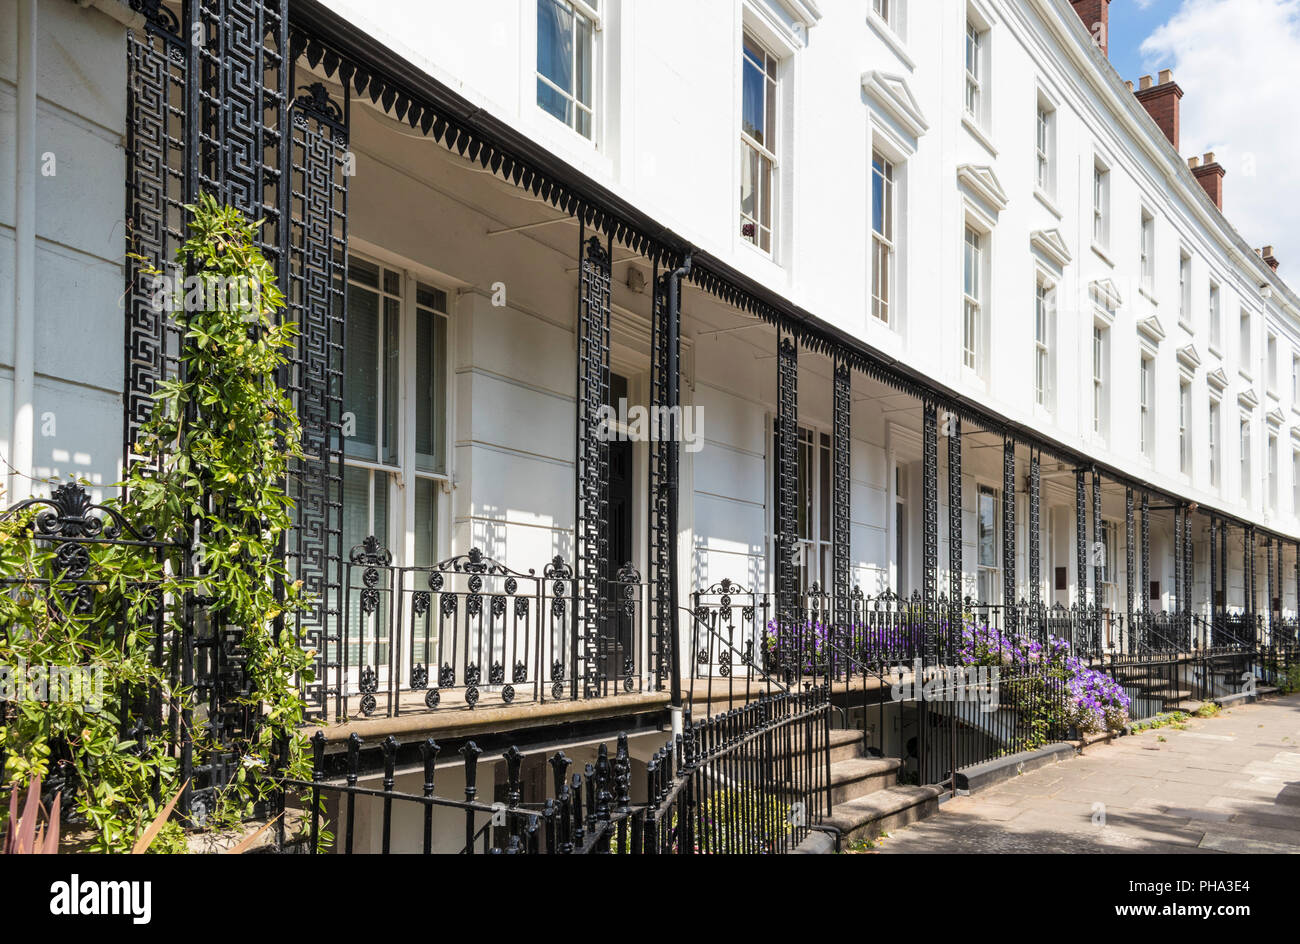 Leamington spa chambres Royal Leamington spa town architecture Régence et d'un balcon en ferronnerie Leamington Spa Warwickshire Angleterre uk go europe Photo Stock